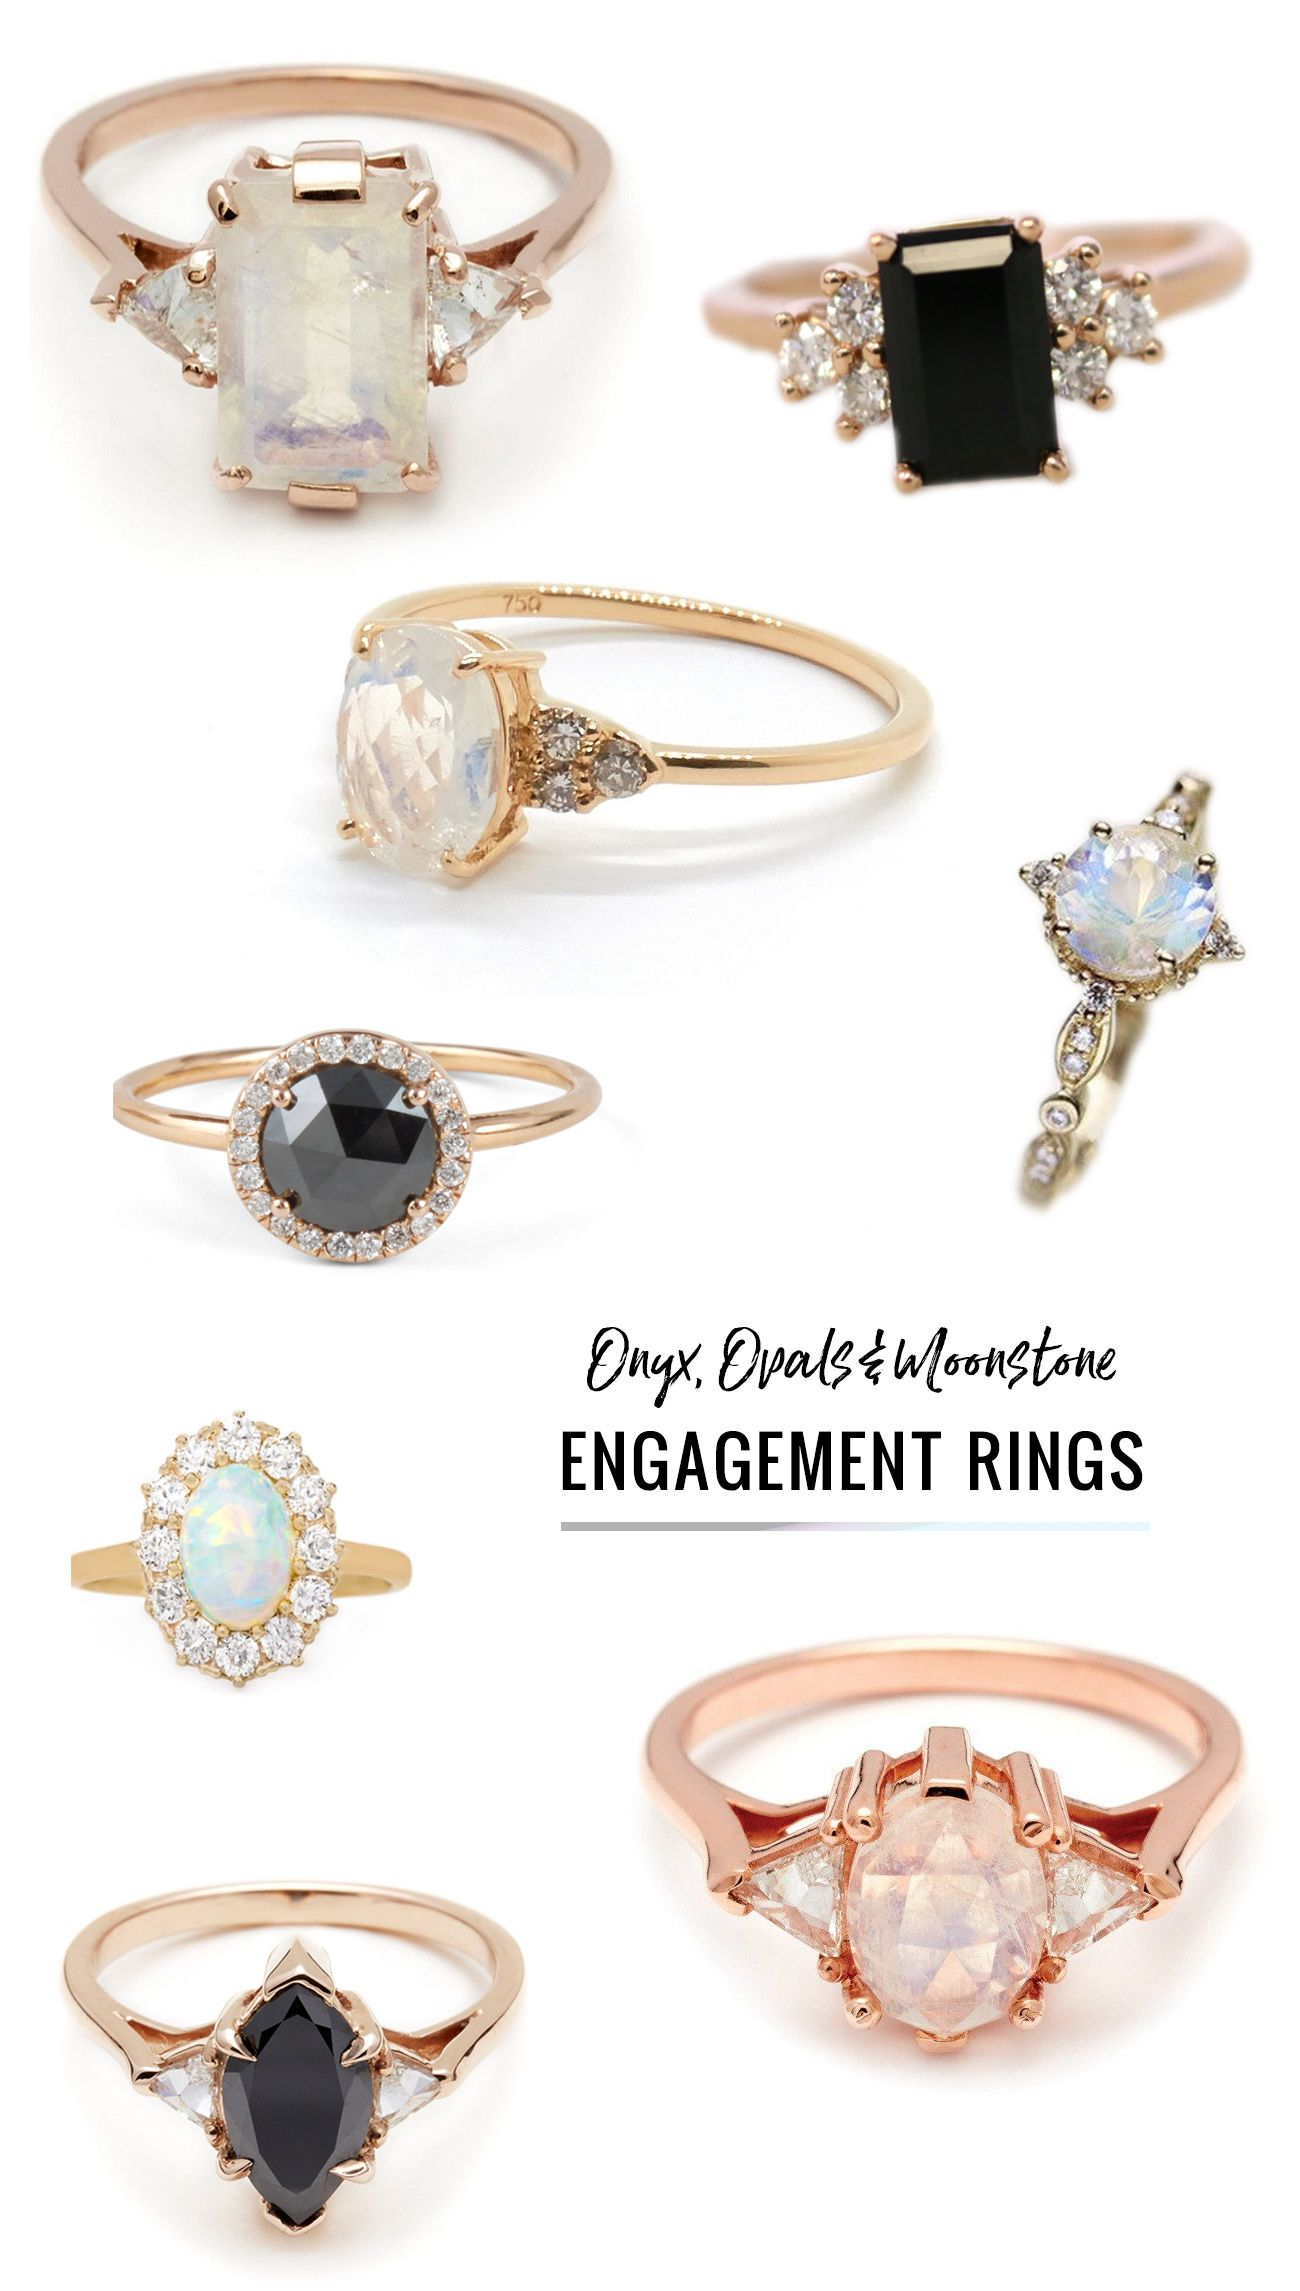 blue diamond wedding featuring ditch rings engagement colored a purple alternative the gemstone stone